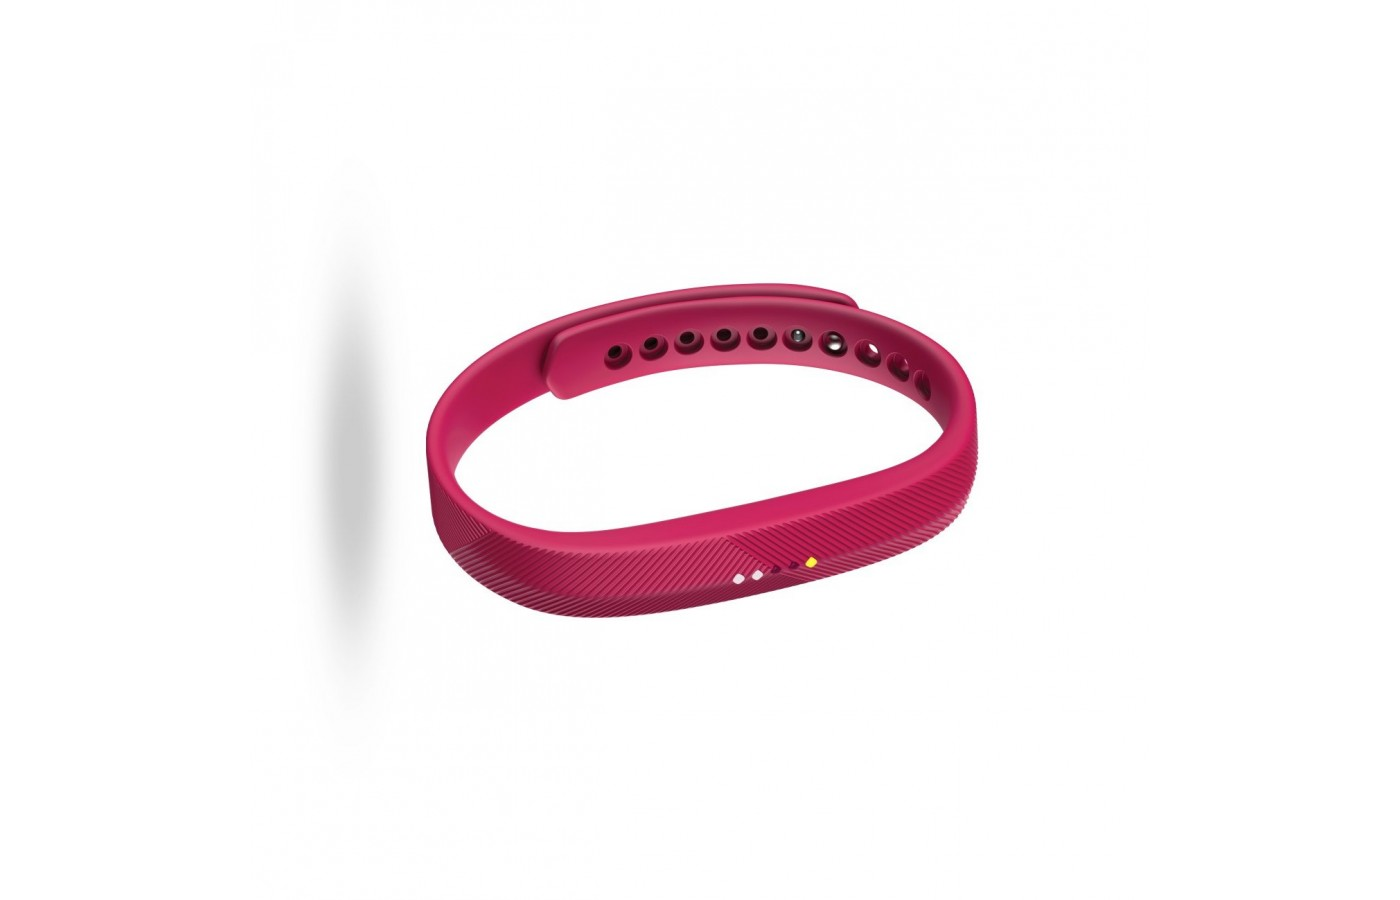 The device helps the wearer stay active with all-day tracking.